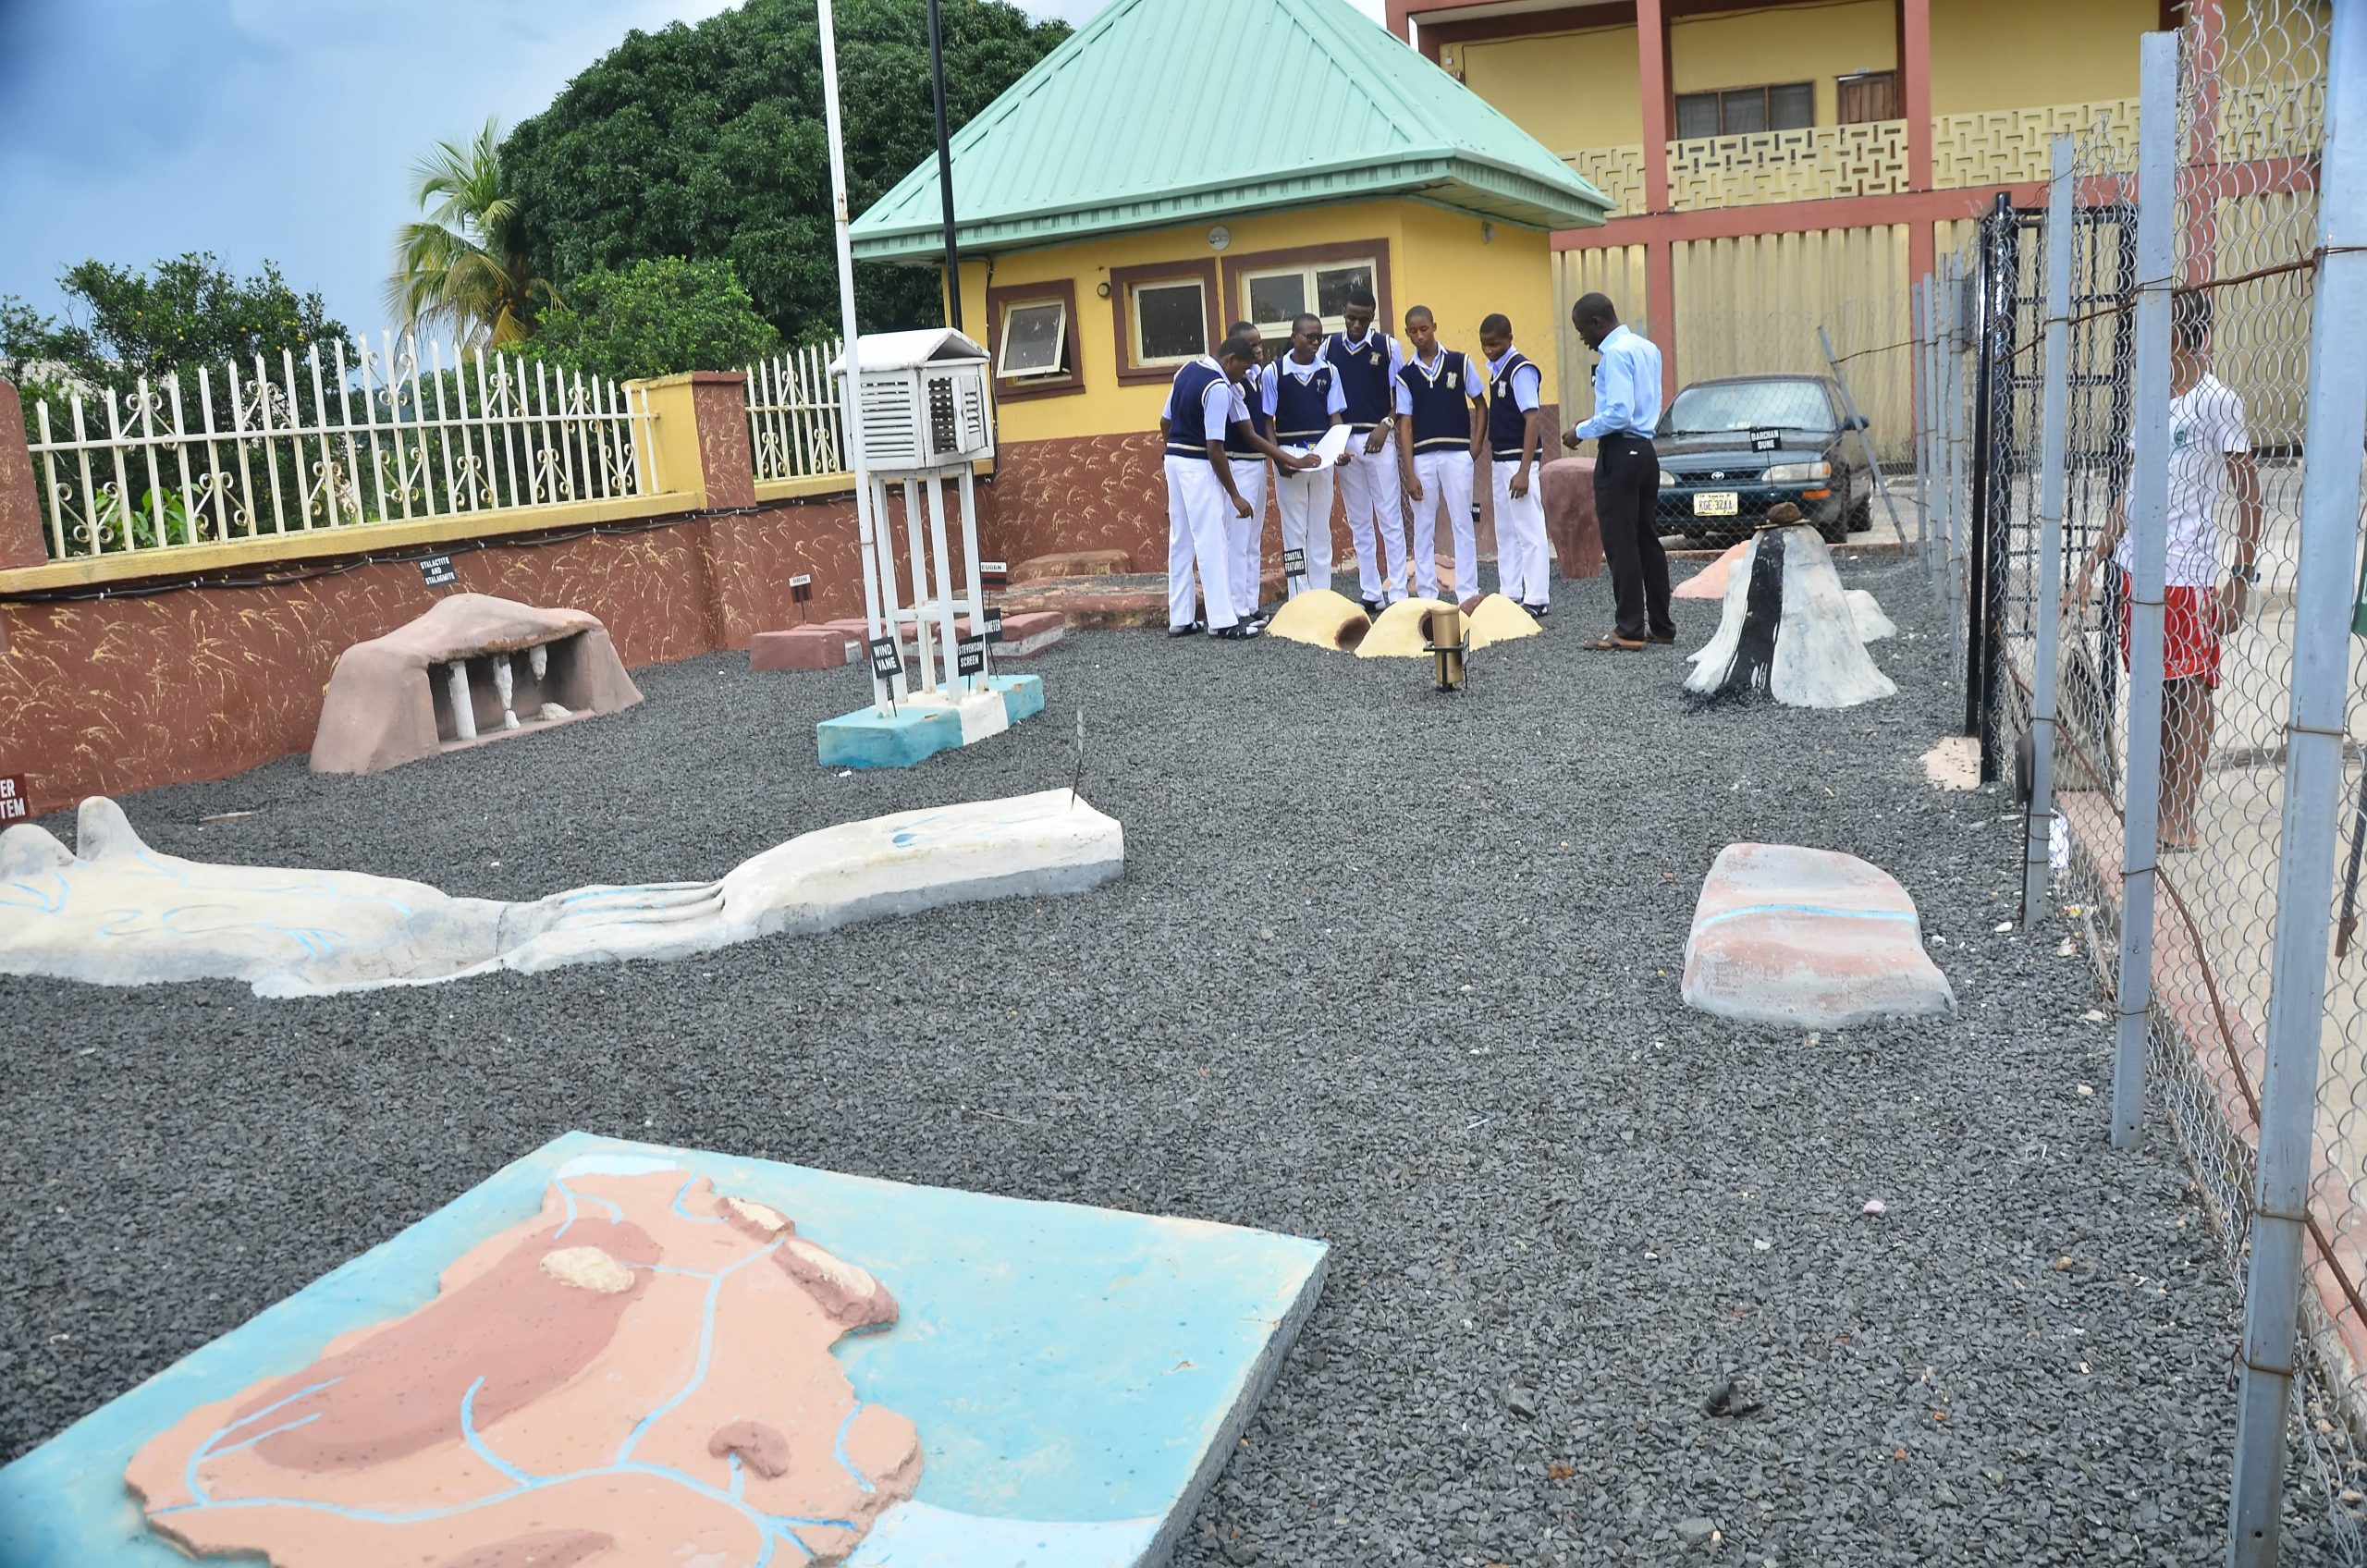 SOME GEOGRAPHY STUDENTS TAKING LESSONS AT THE SCHOOL'S GEOGRAPHY GARDEN